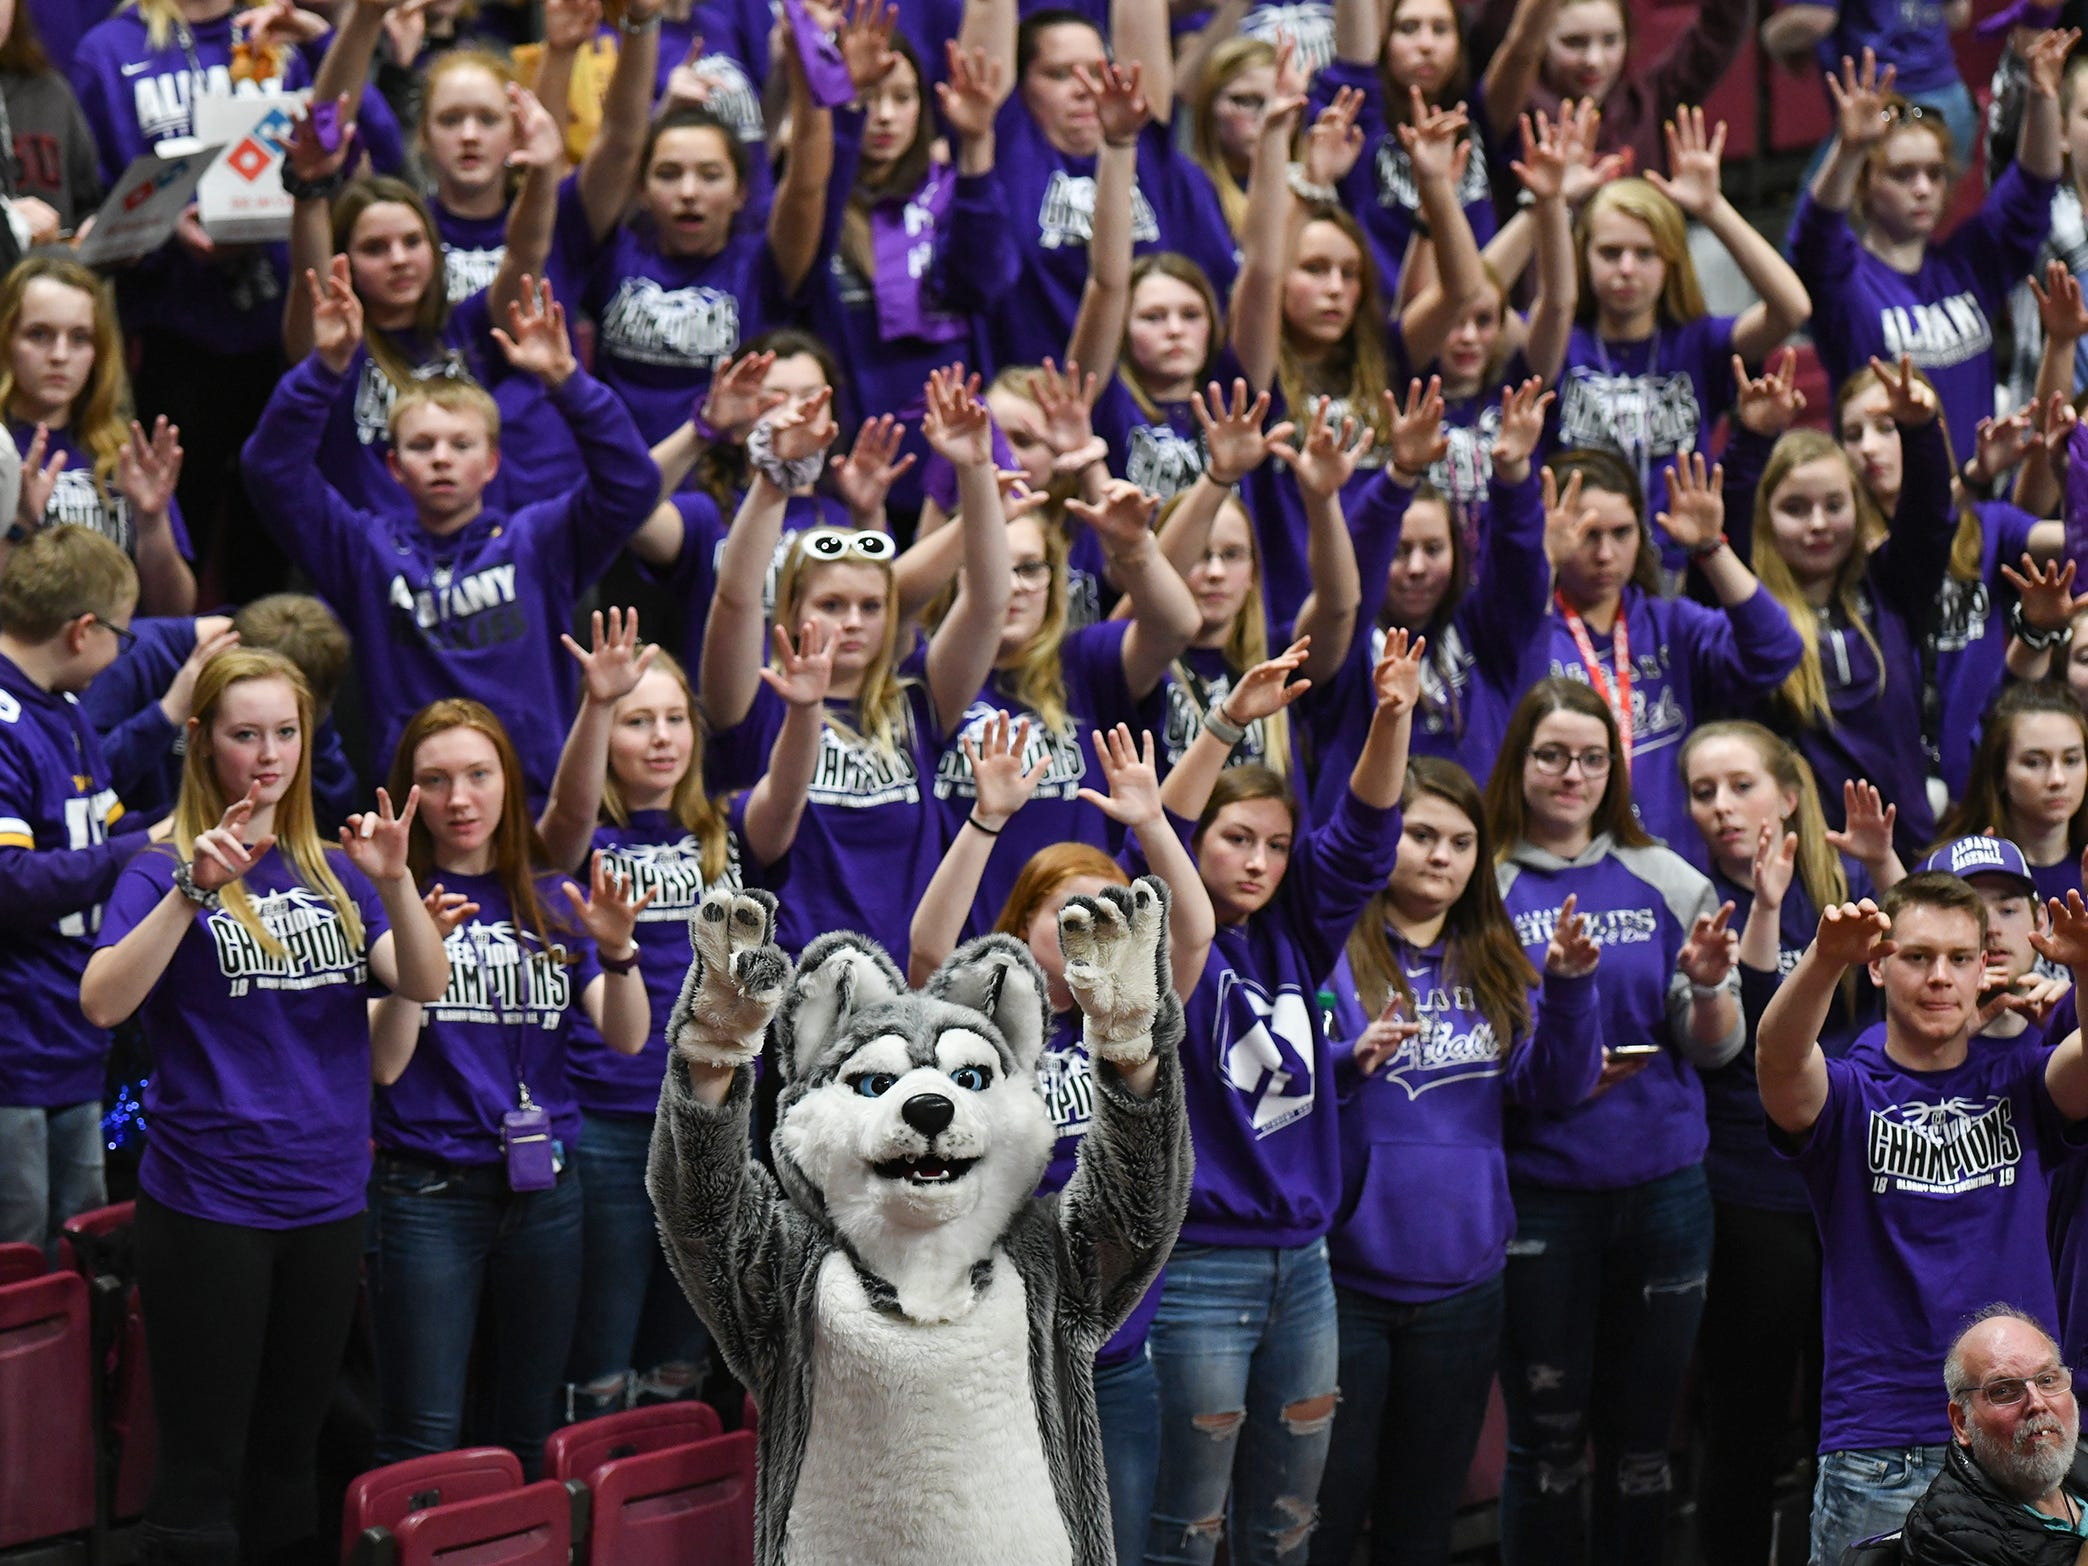 Albany fans cheer for their team during the state Class 2A quarterfinals game against Holy Family Catholic Wednesday, March 13, at the University of Minnesota in Minneapolis. Albany won 60-49 to advance in the tournament.